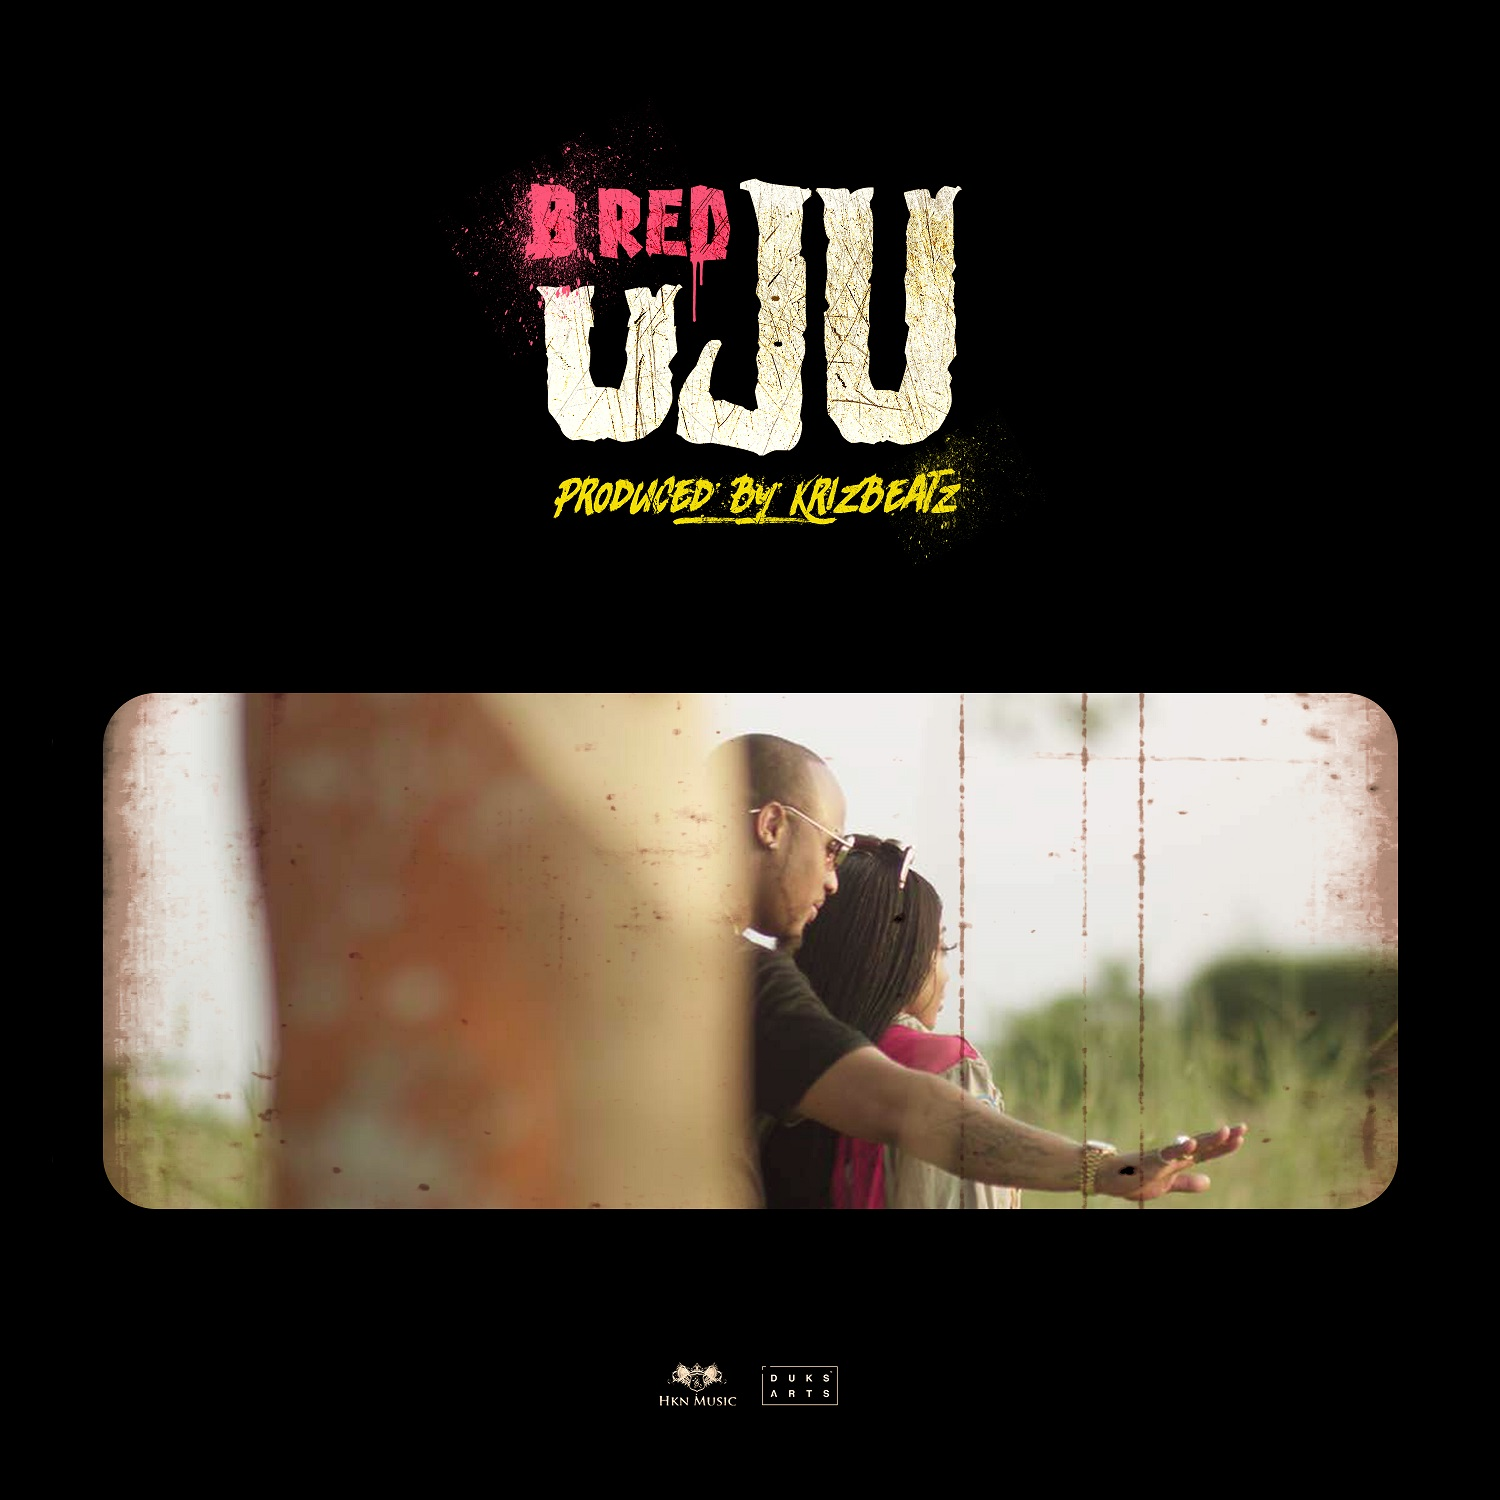 B Red - Uju (Prod. by KrizBeatz)